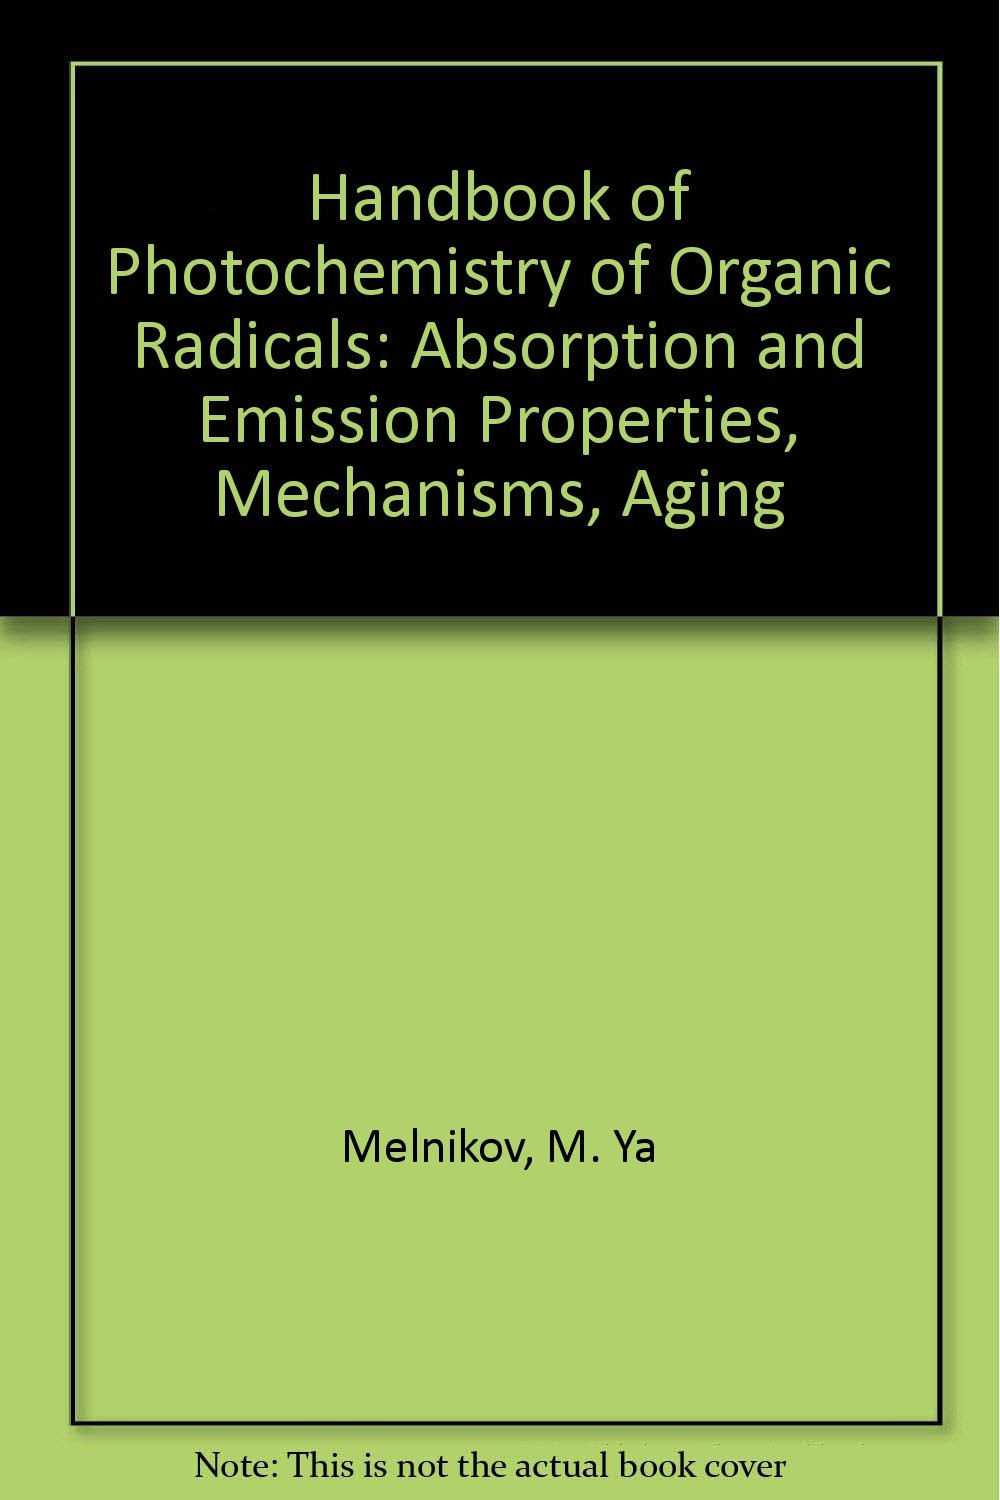 Handbook of Photochemistry of Organic Radicals: Absorption and Emission Properties, Mechanisms, Aging